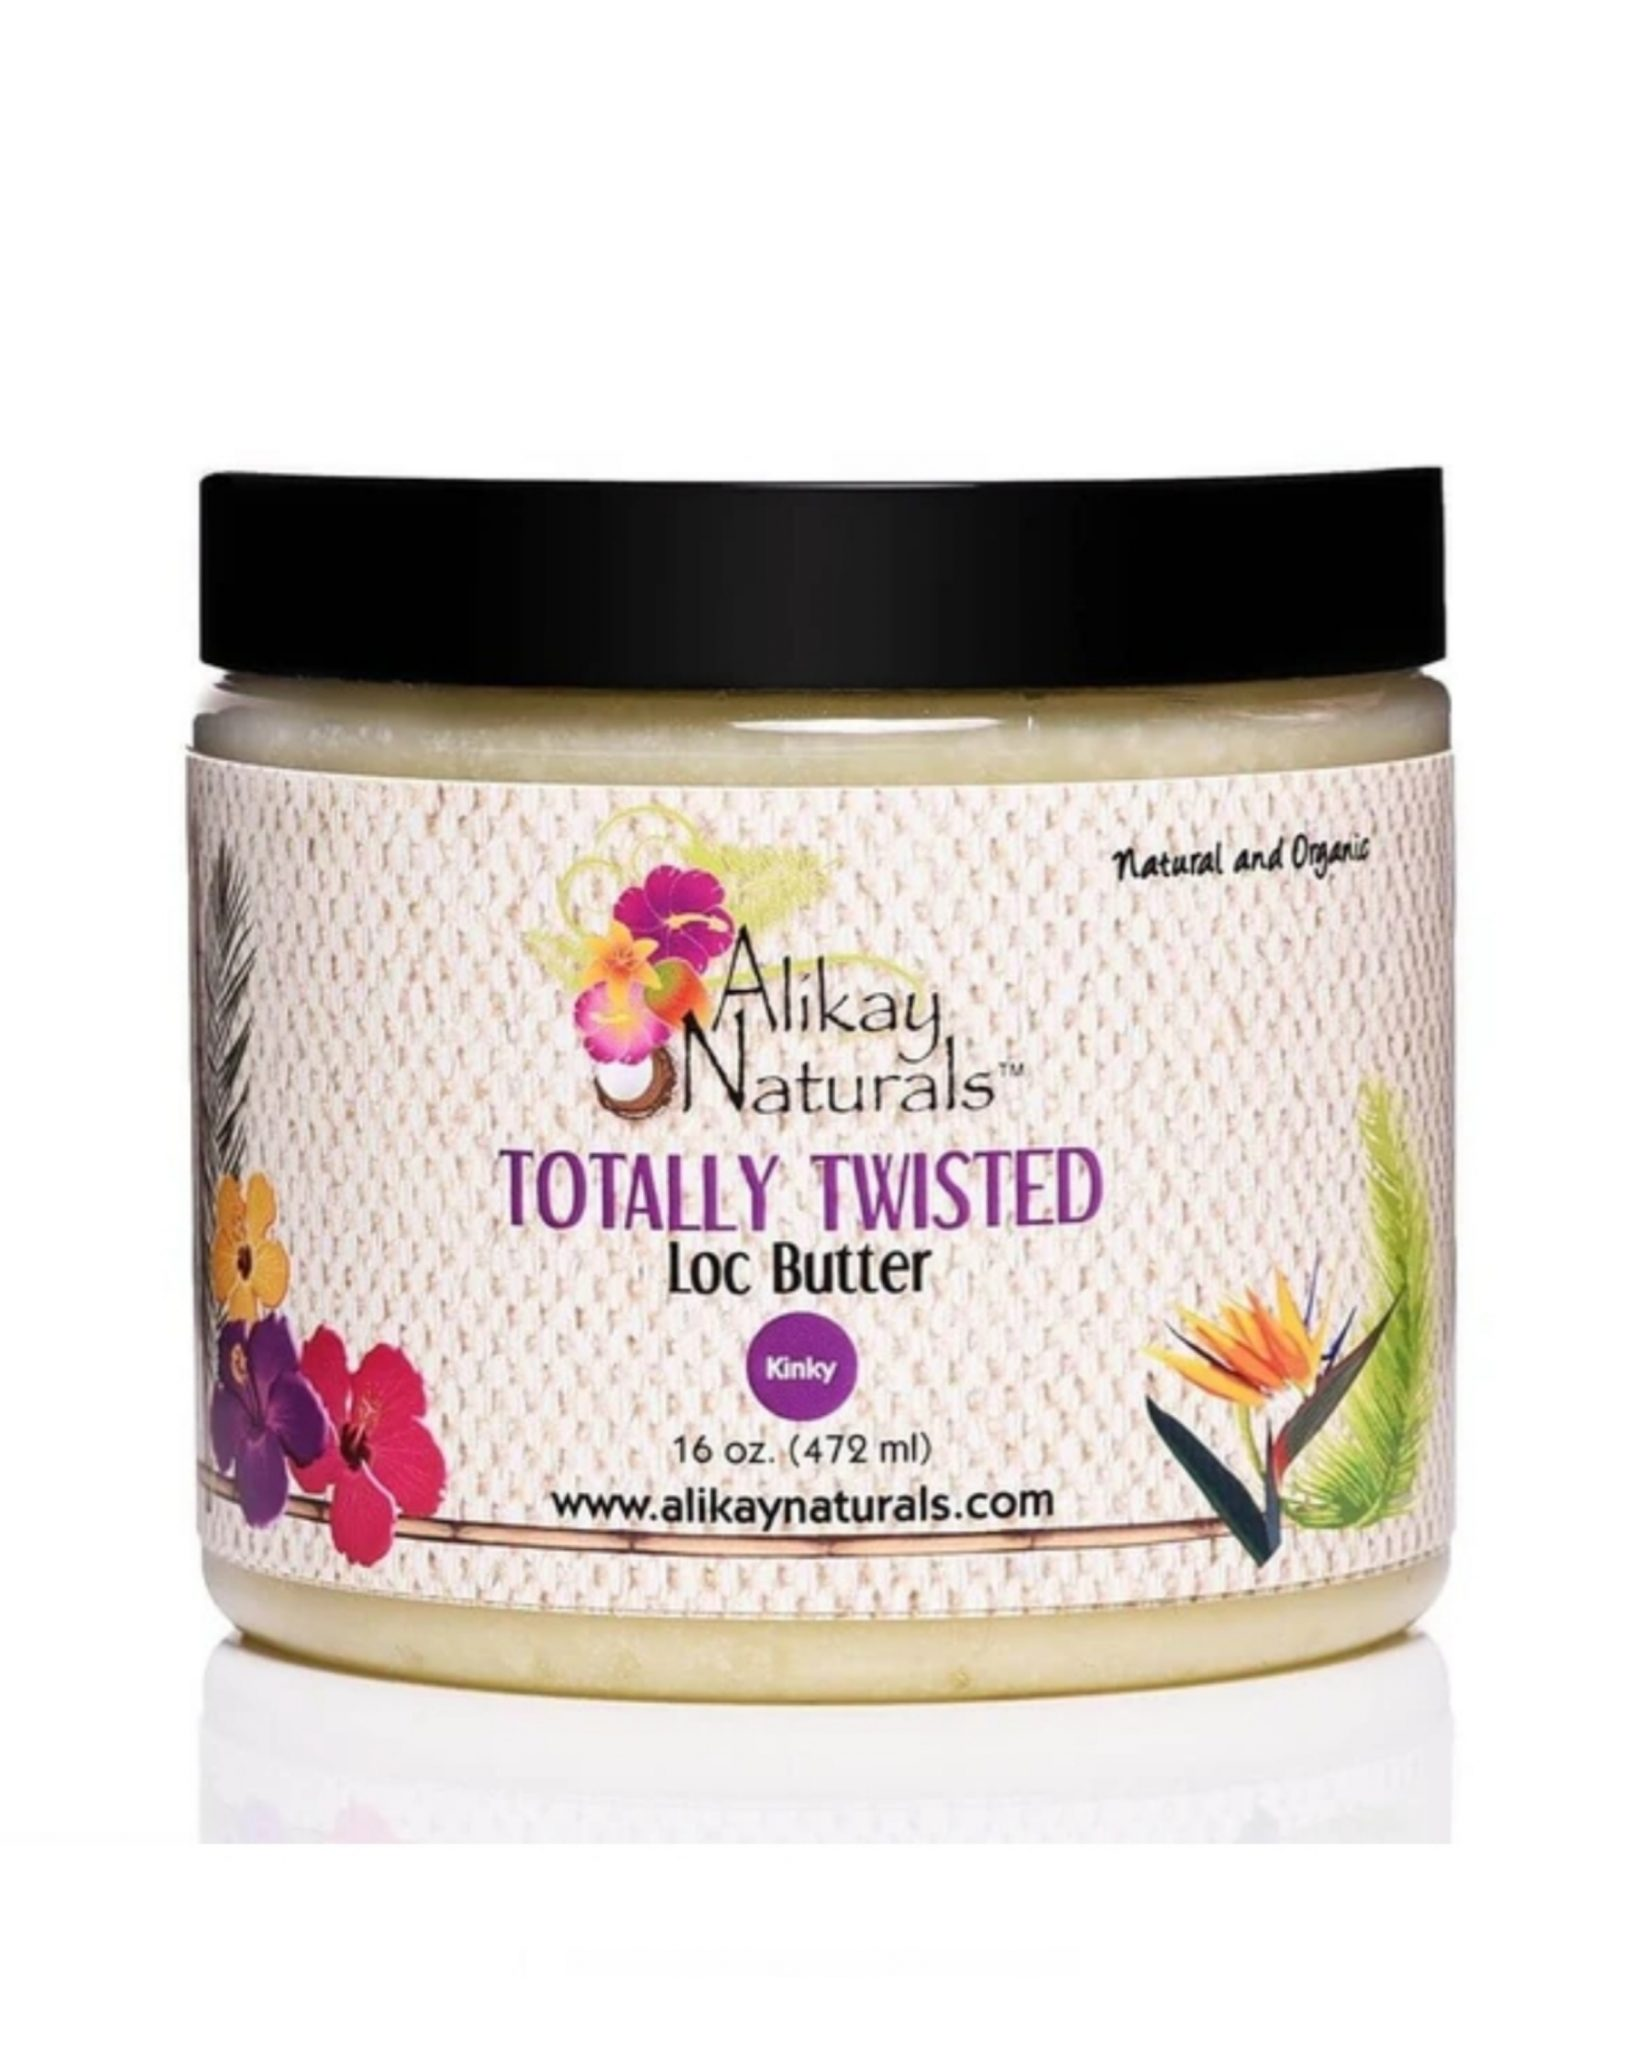 Alikay Naturals Totally Twisted Loc Butter 16oz